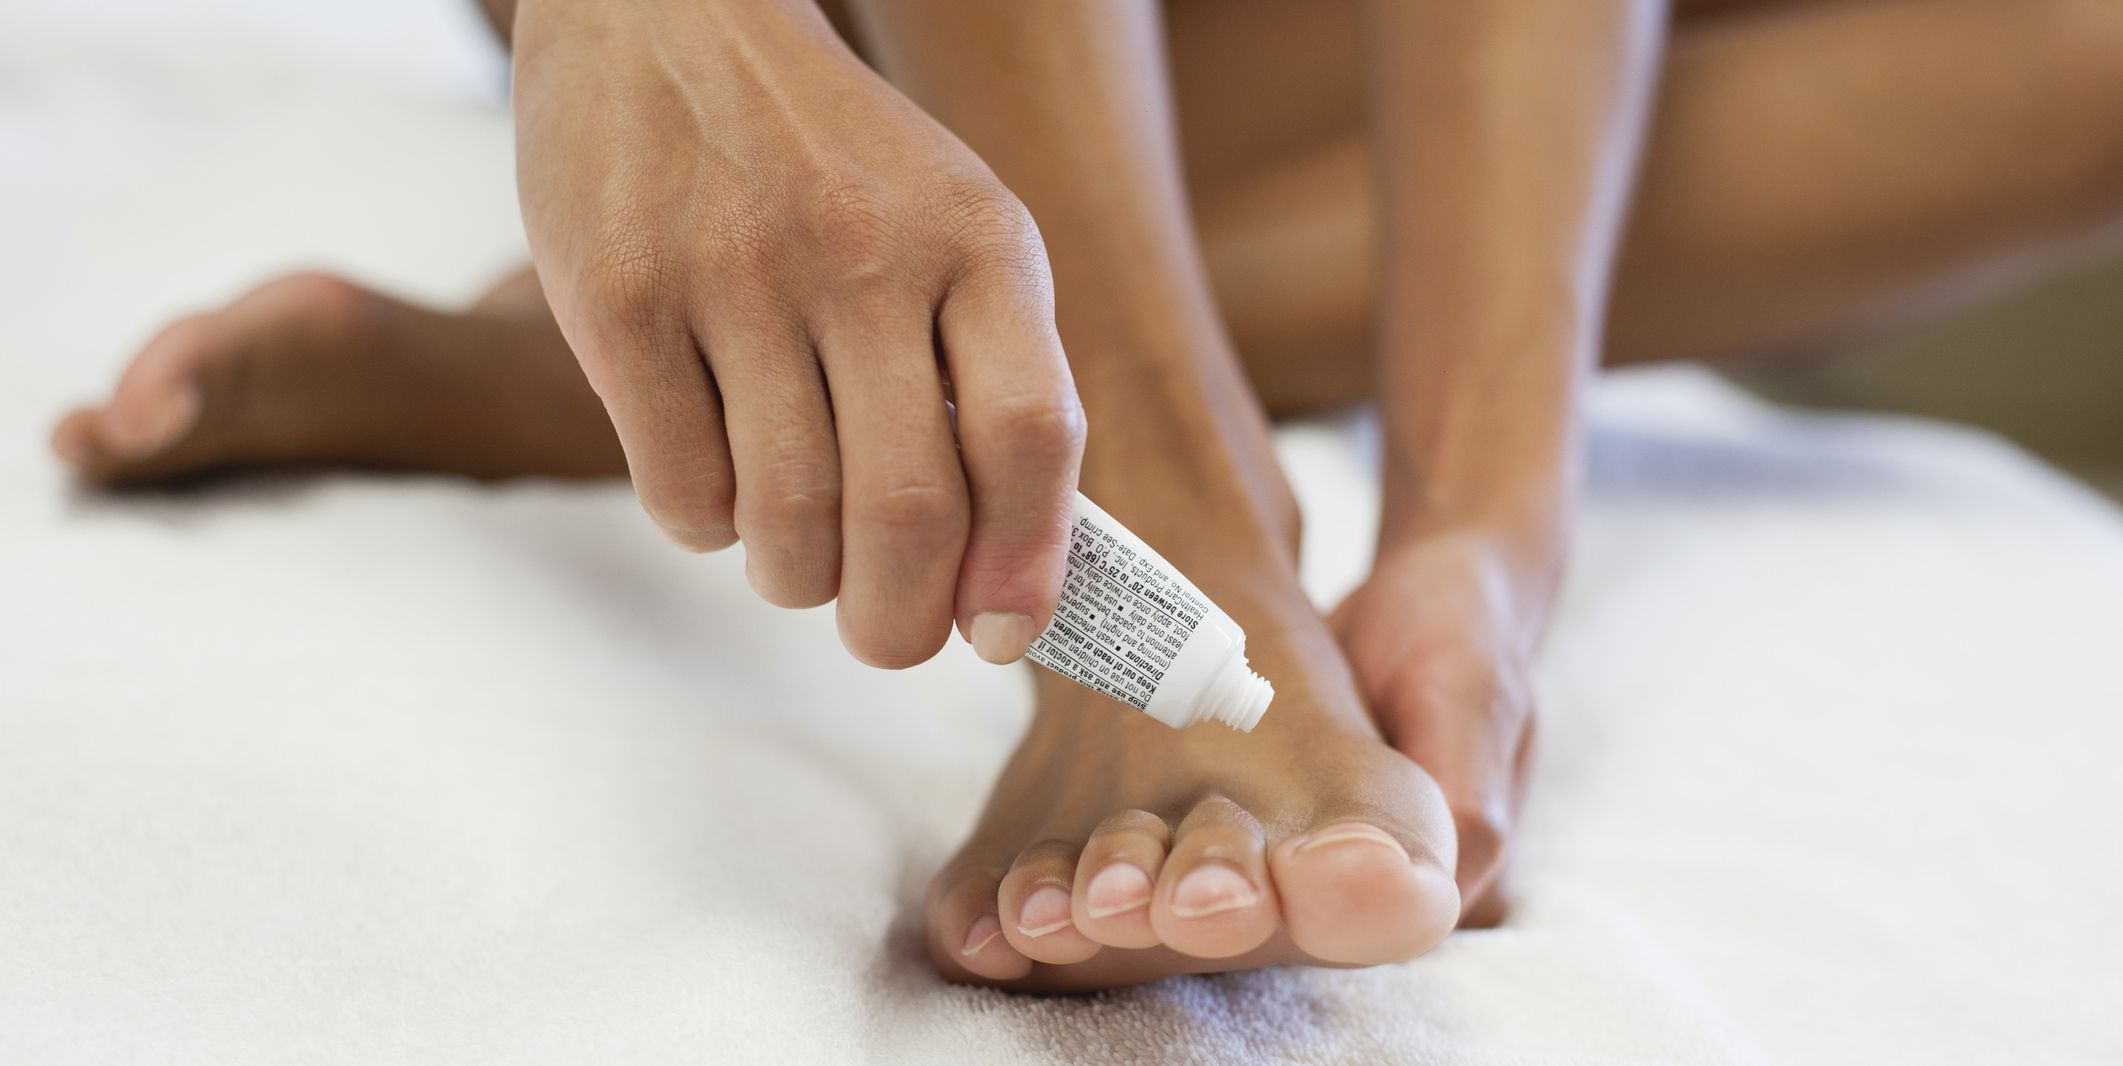 treating thecommon fungal infection